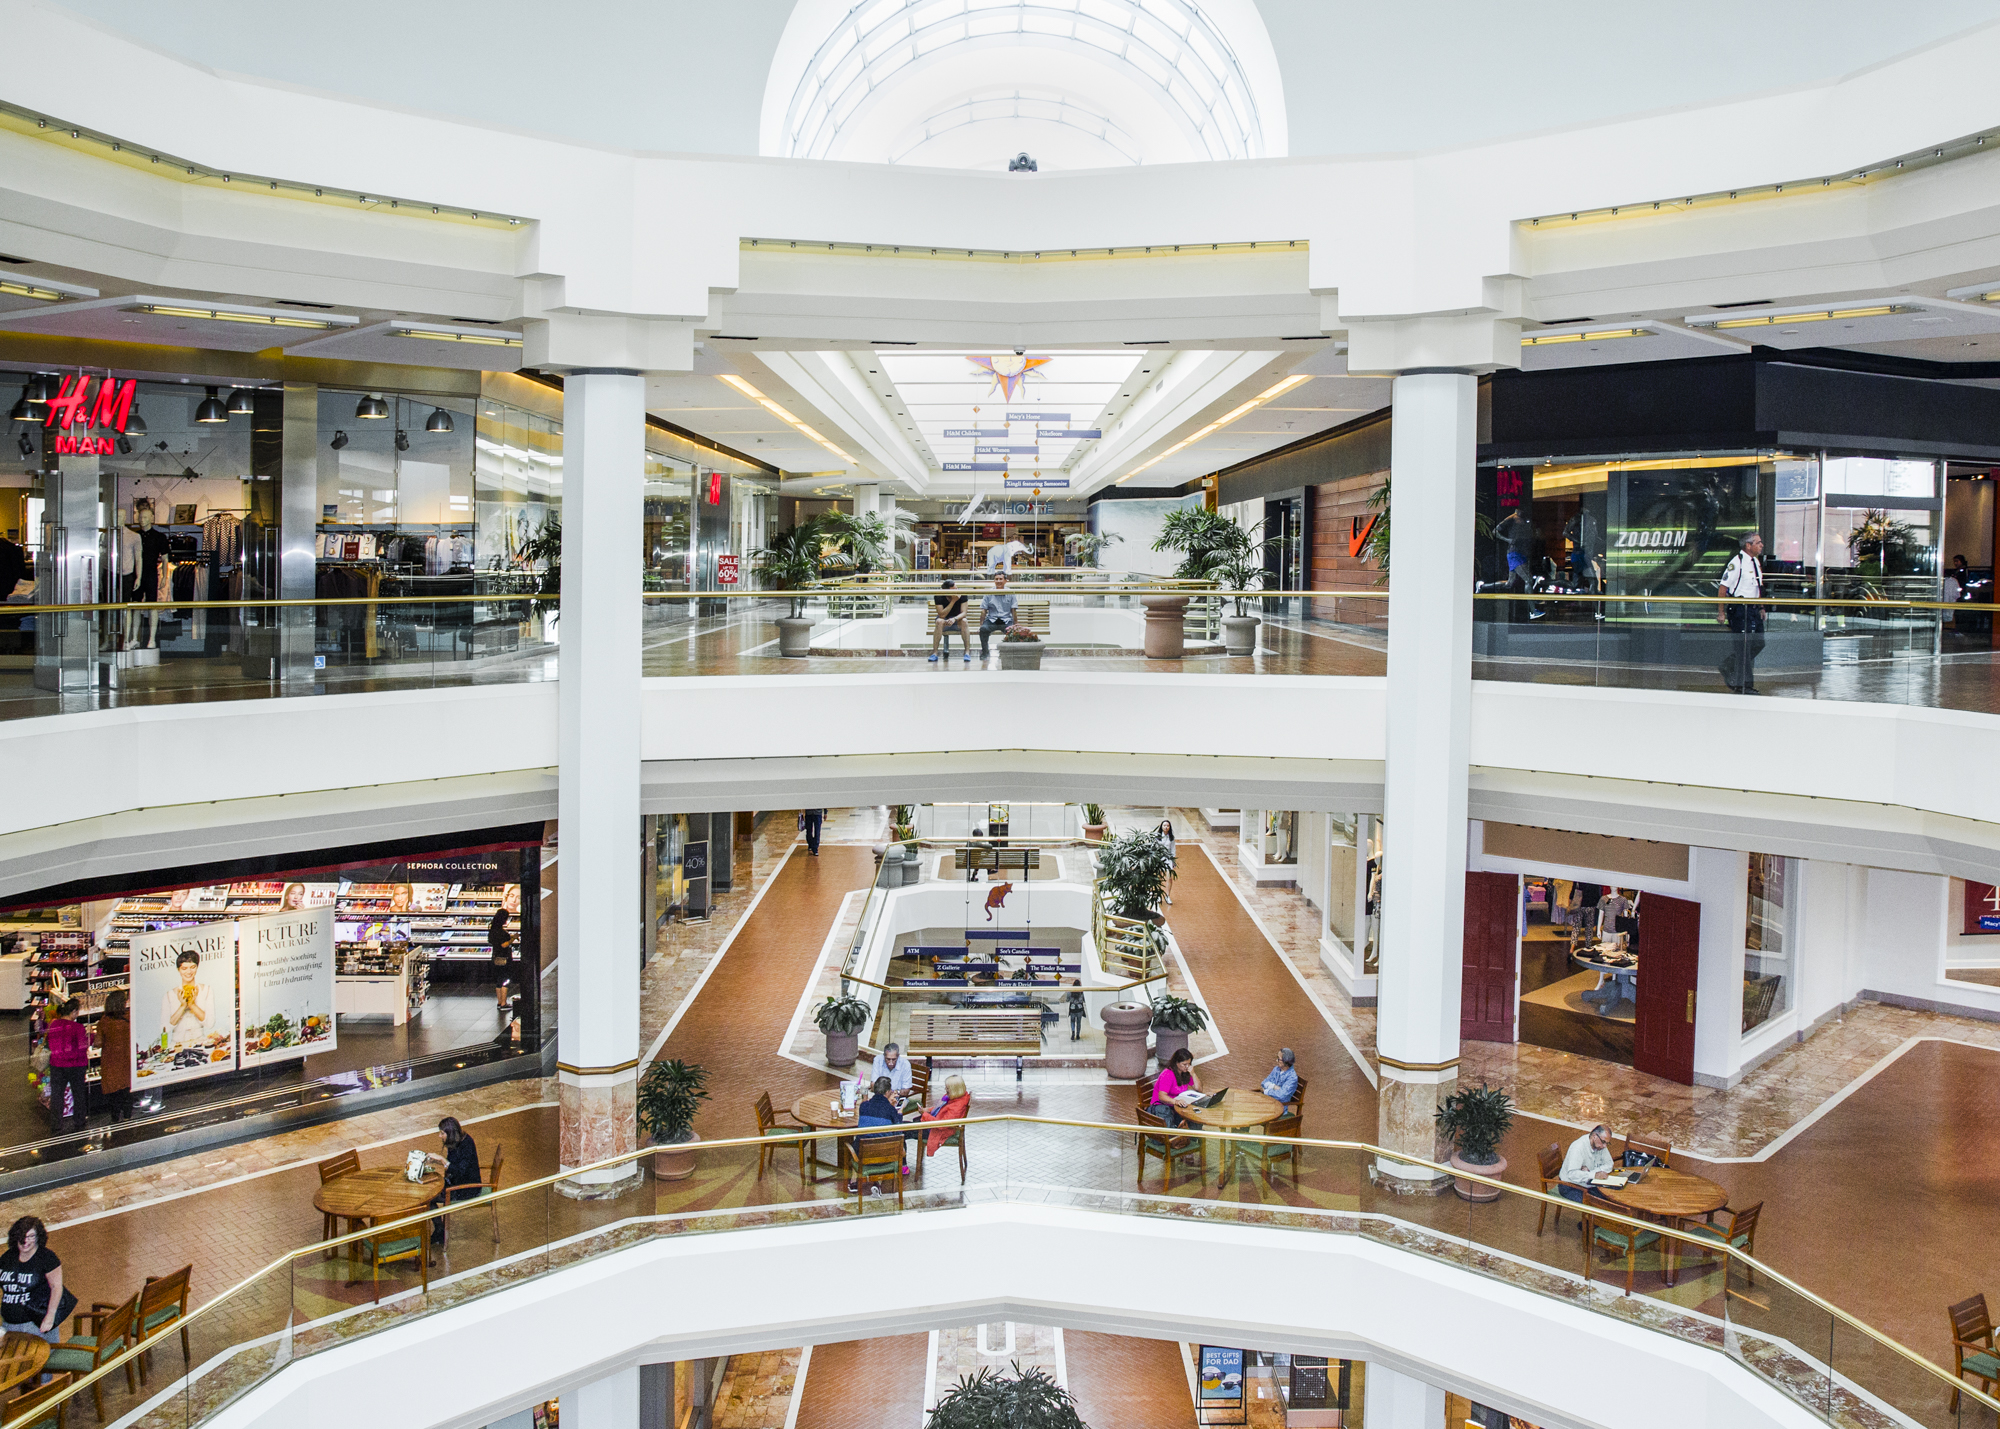 shopping mall the study of The challenge galleria shopping malls are part of the gtc group, one of the leading commercial real estate companies in central, eastern and southern europe.